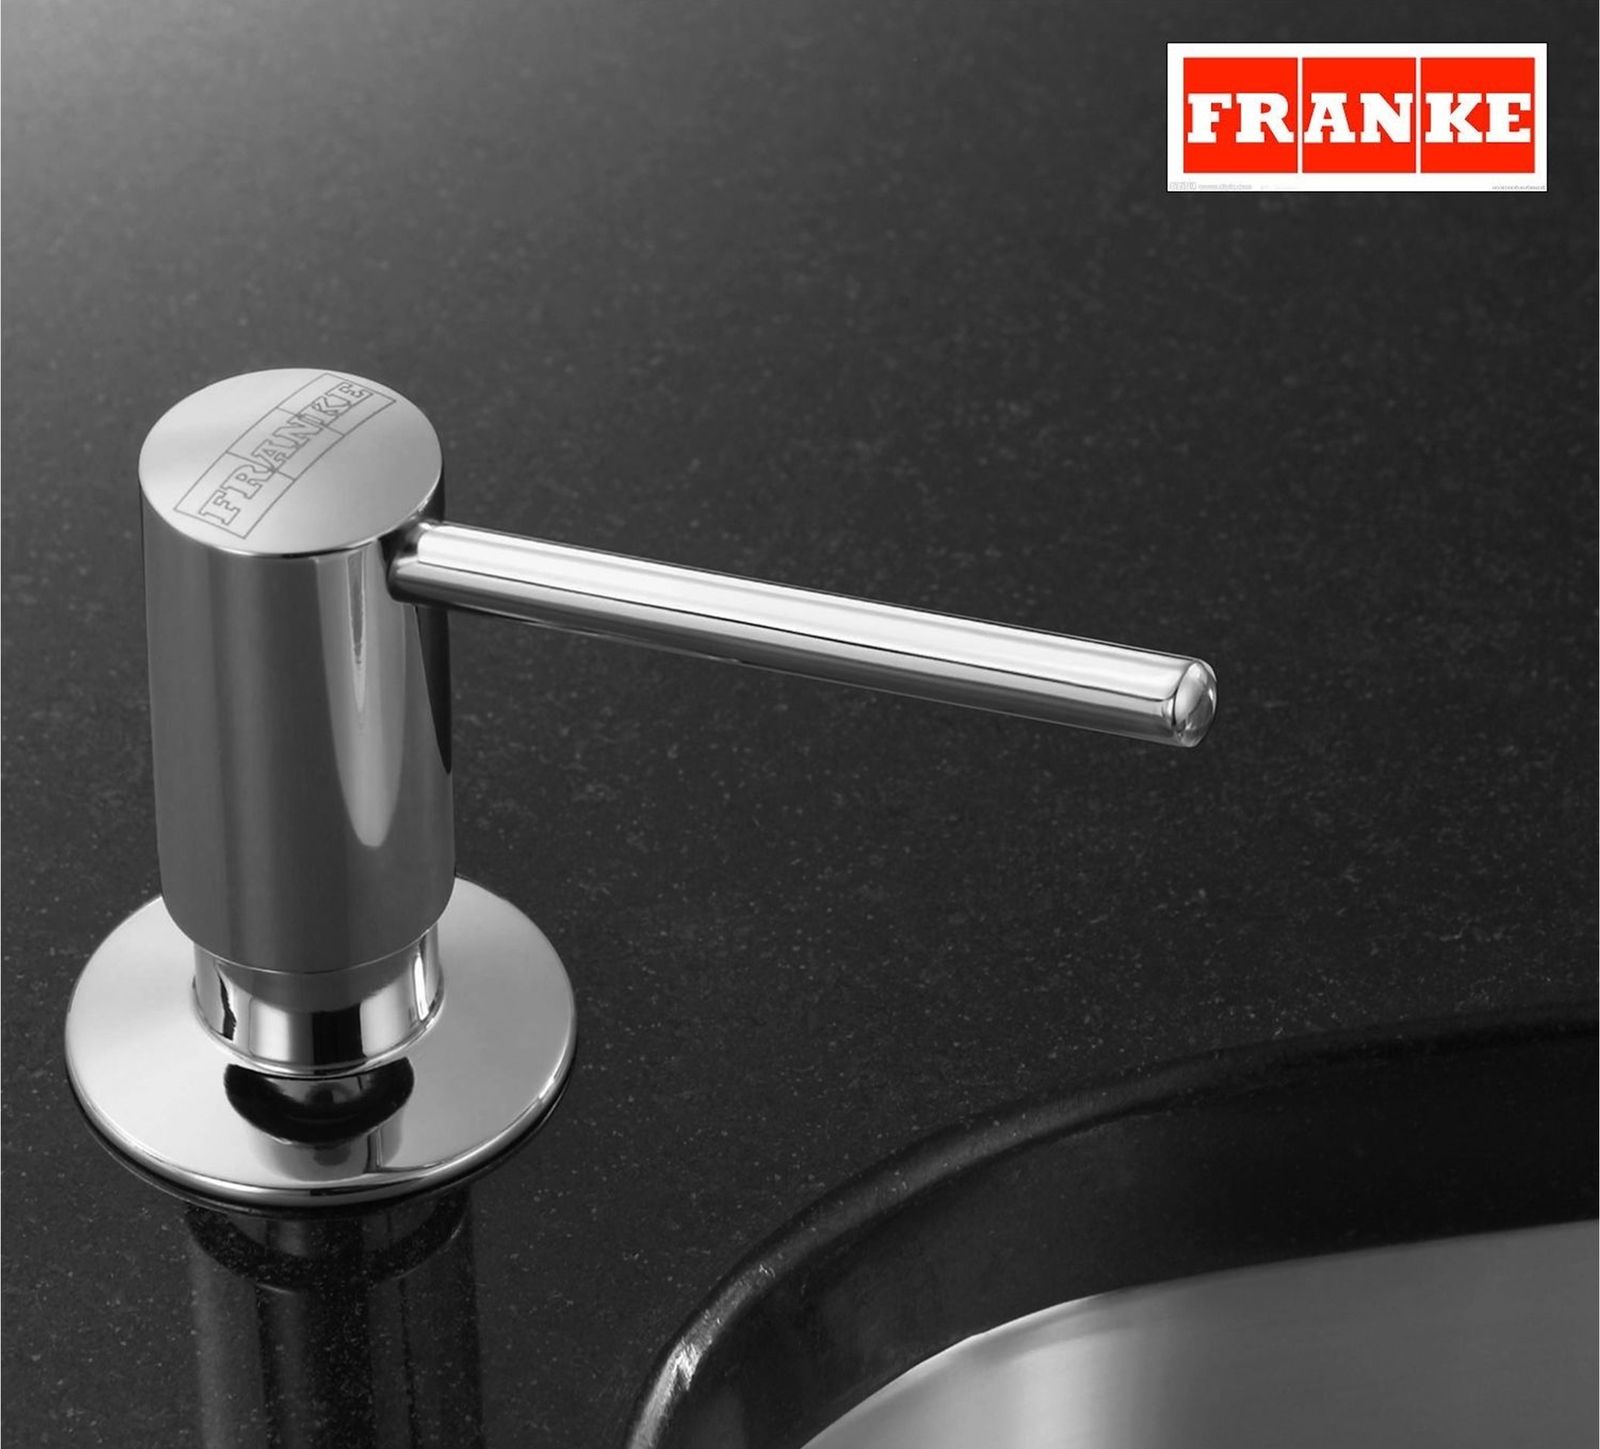 Franke-Chrome-Soap-Washing-Up-Liquid-Dispenser-Pump-_57